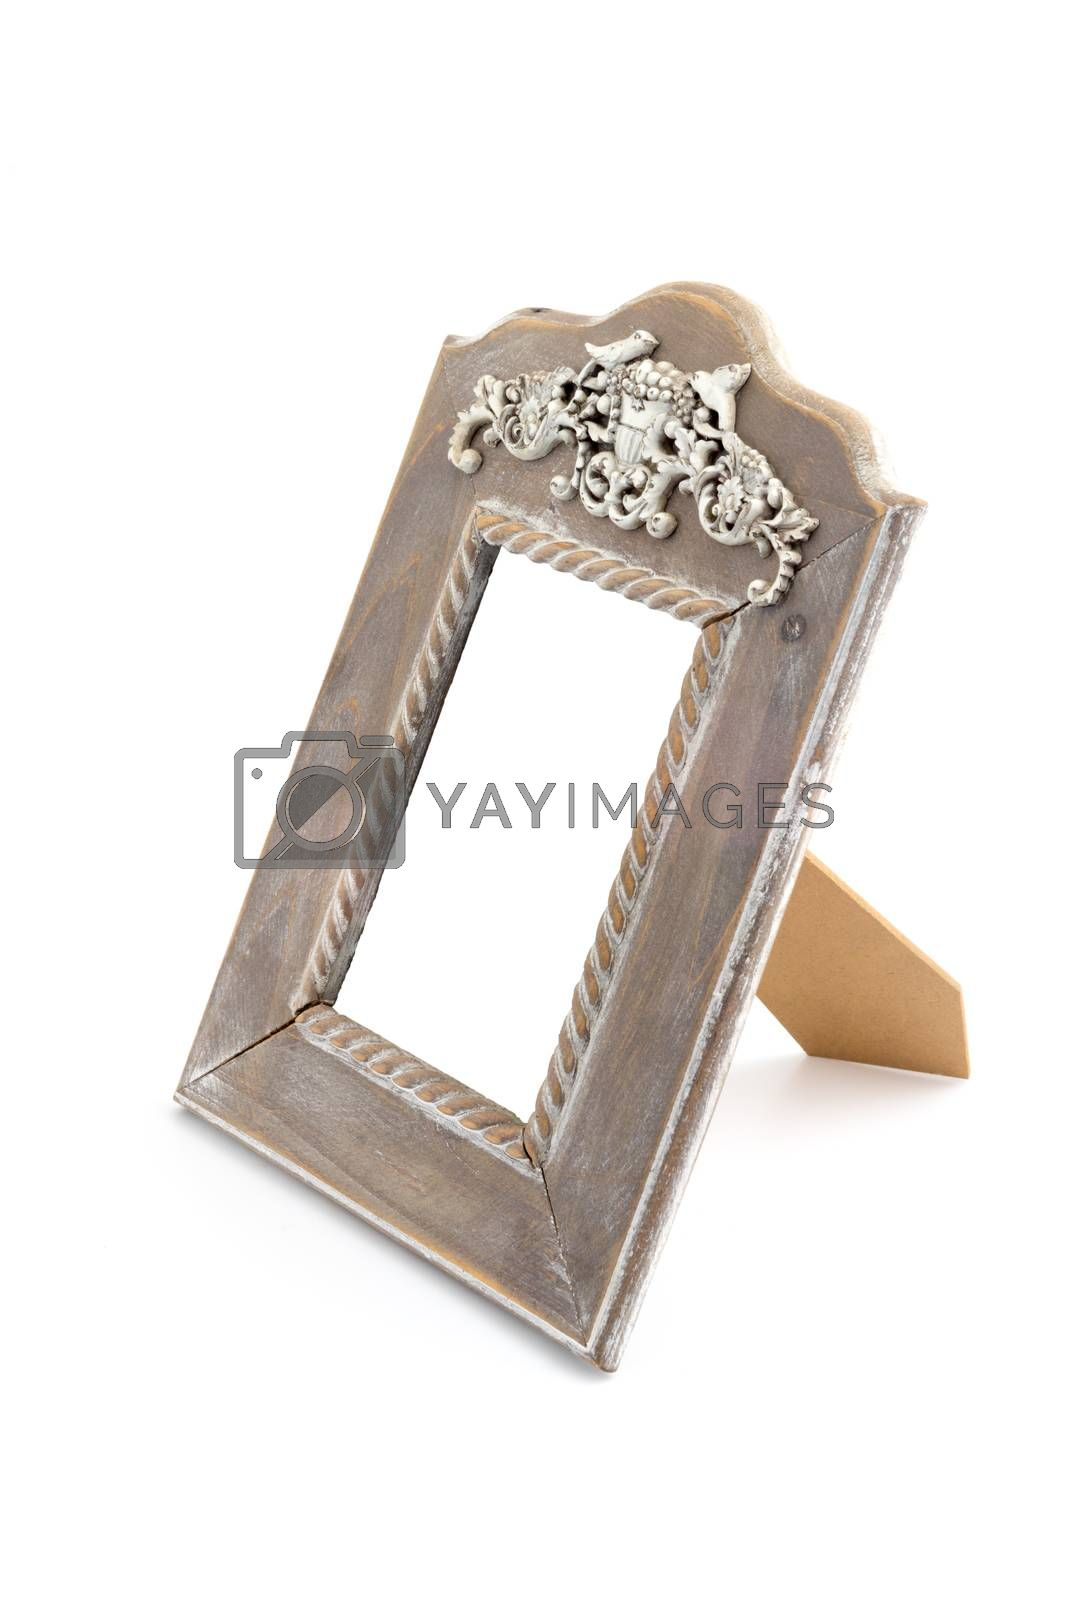 Royalty free image of Wooden vintage style photo frame by iamway